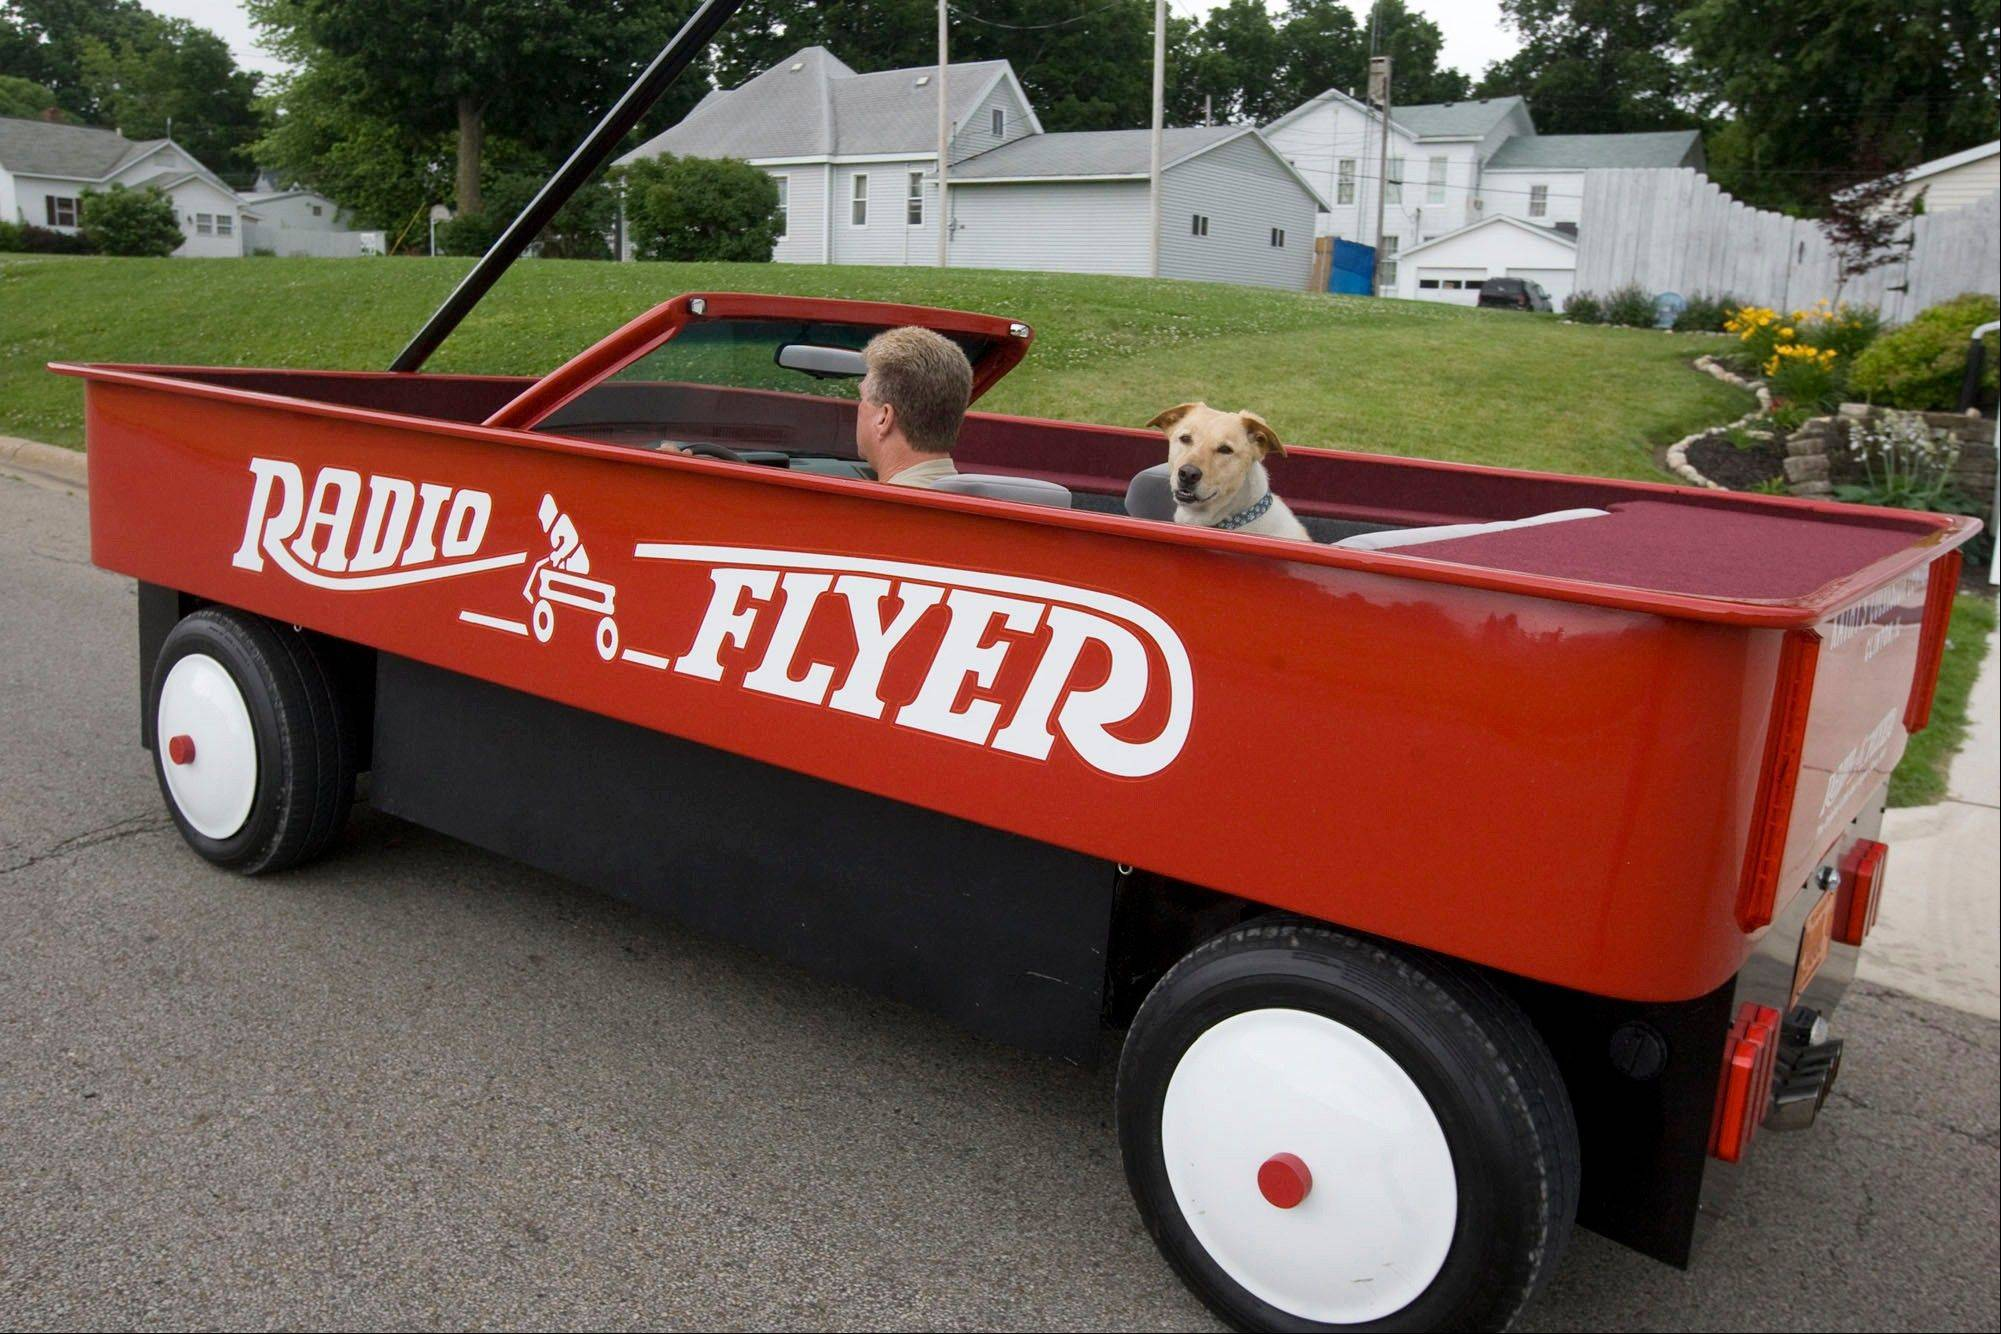 Rick Sullivan of Clinton, Ill., and his dog, Murray, enjoy a ride in a vehicle he created in the shape of a giant Radio Flyer wagon.